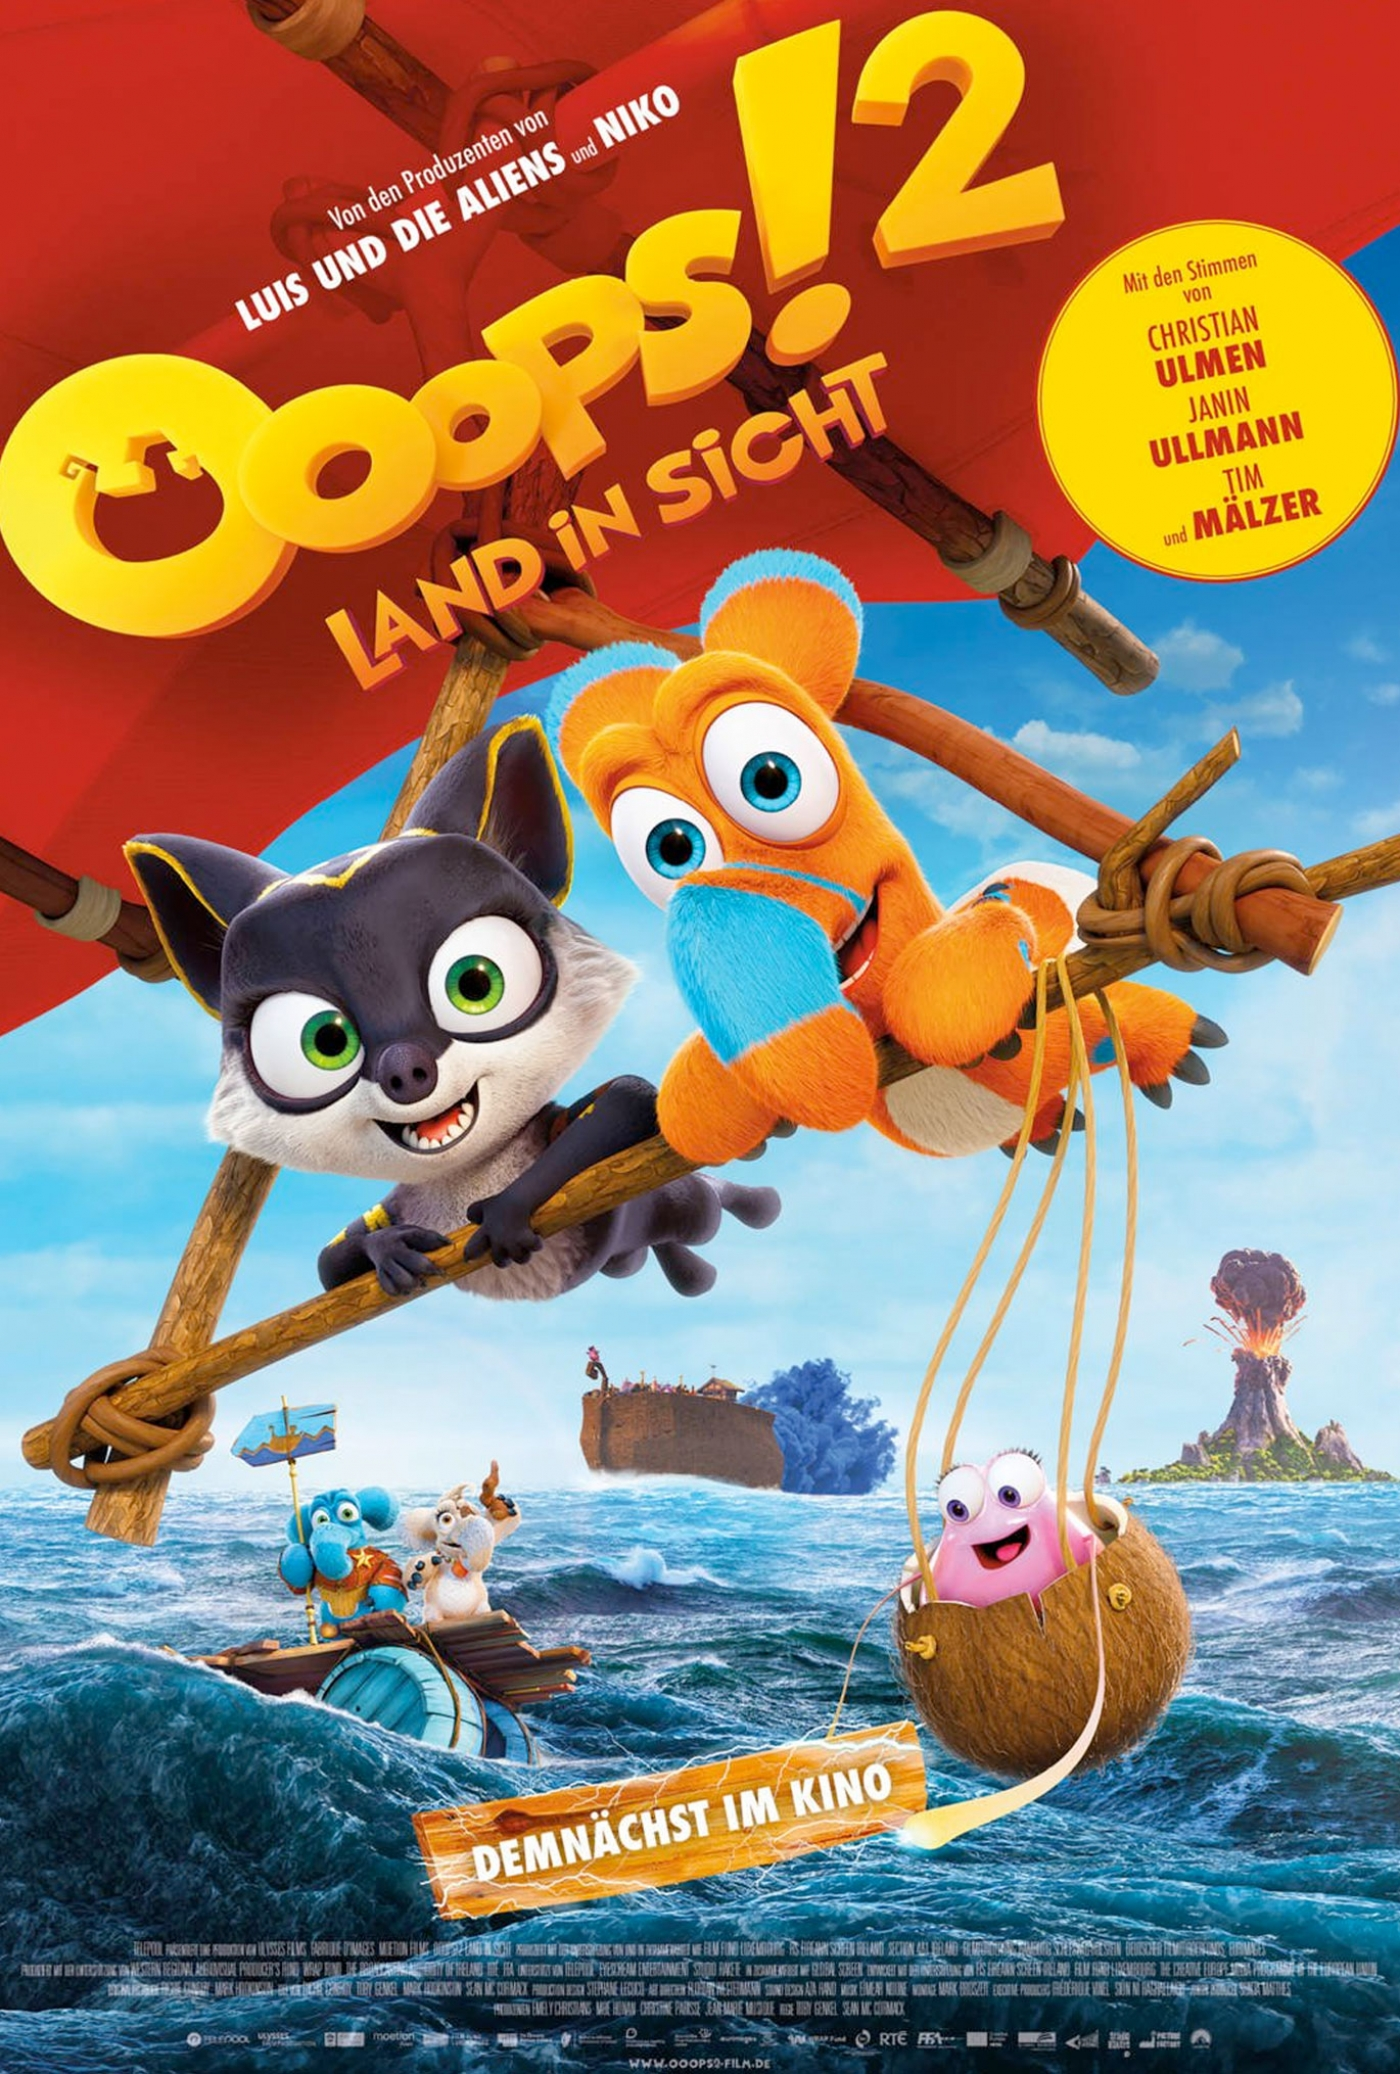 OOOPS 2 – LAND IN SICHT